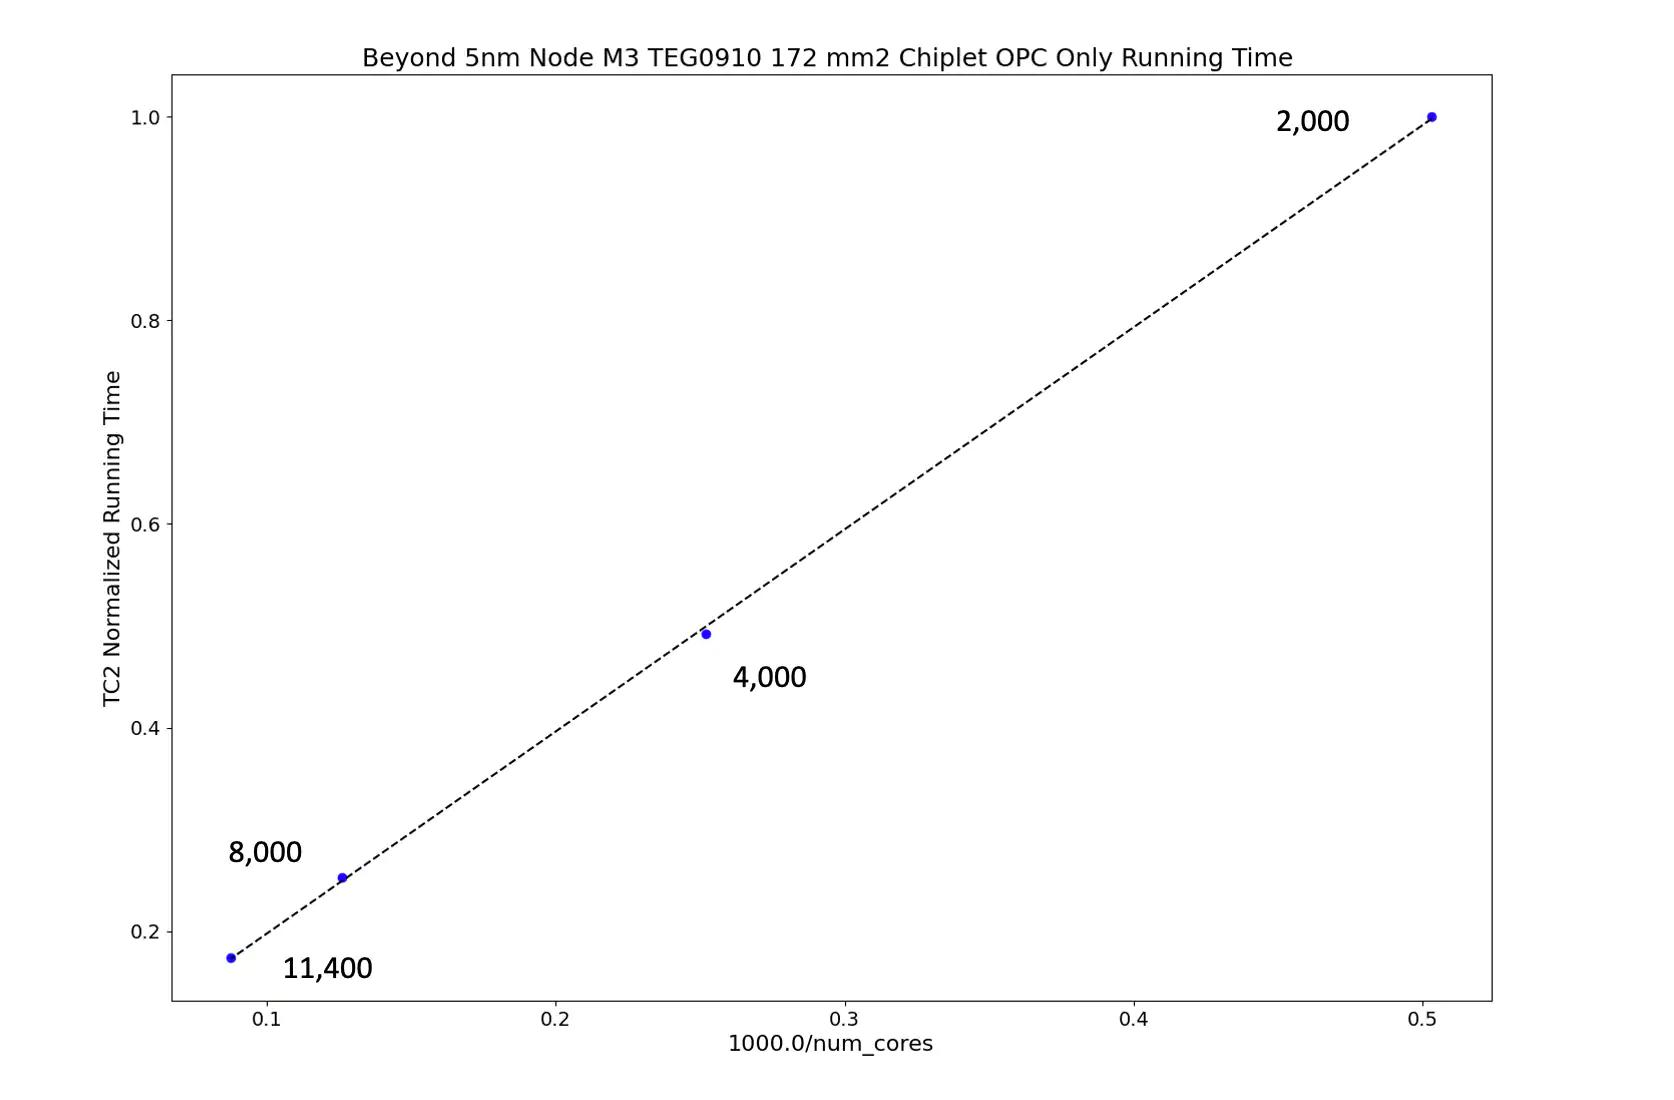 Chart of OPC runtime results for a beyond 5 nm technology node EUV thin wire chiplet using IBM's Next Gen Cloud. This chiplet is 172mm2 in area and represents an area representative of a typical foundry chiplet. On the X-axis 1000.0/num_cores with tick marks at 0.1, 0.2, 0.3, 0.4, and 0.5 and on the Y-axis TC2 Normalized Running time with marks at 0.2, 0.4, 0.6, 0.8. Four data points along a 45 degree trend-line that goes from bottom left to top right. Data points are labeled, 11,400, 8,000, 4,00 and 2,000.